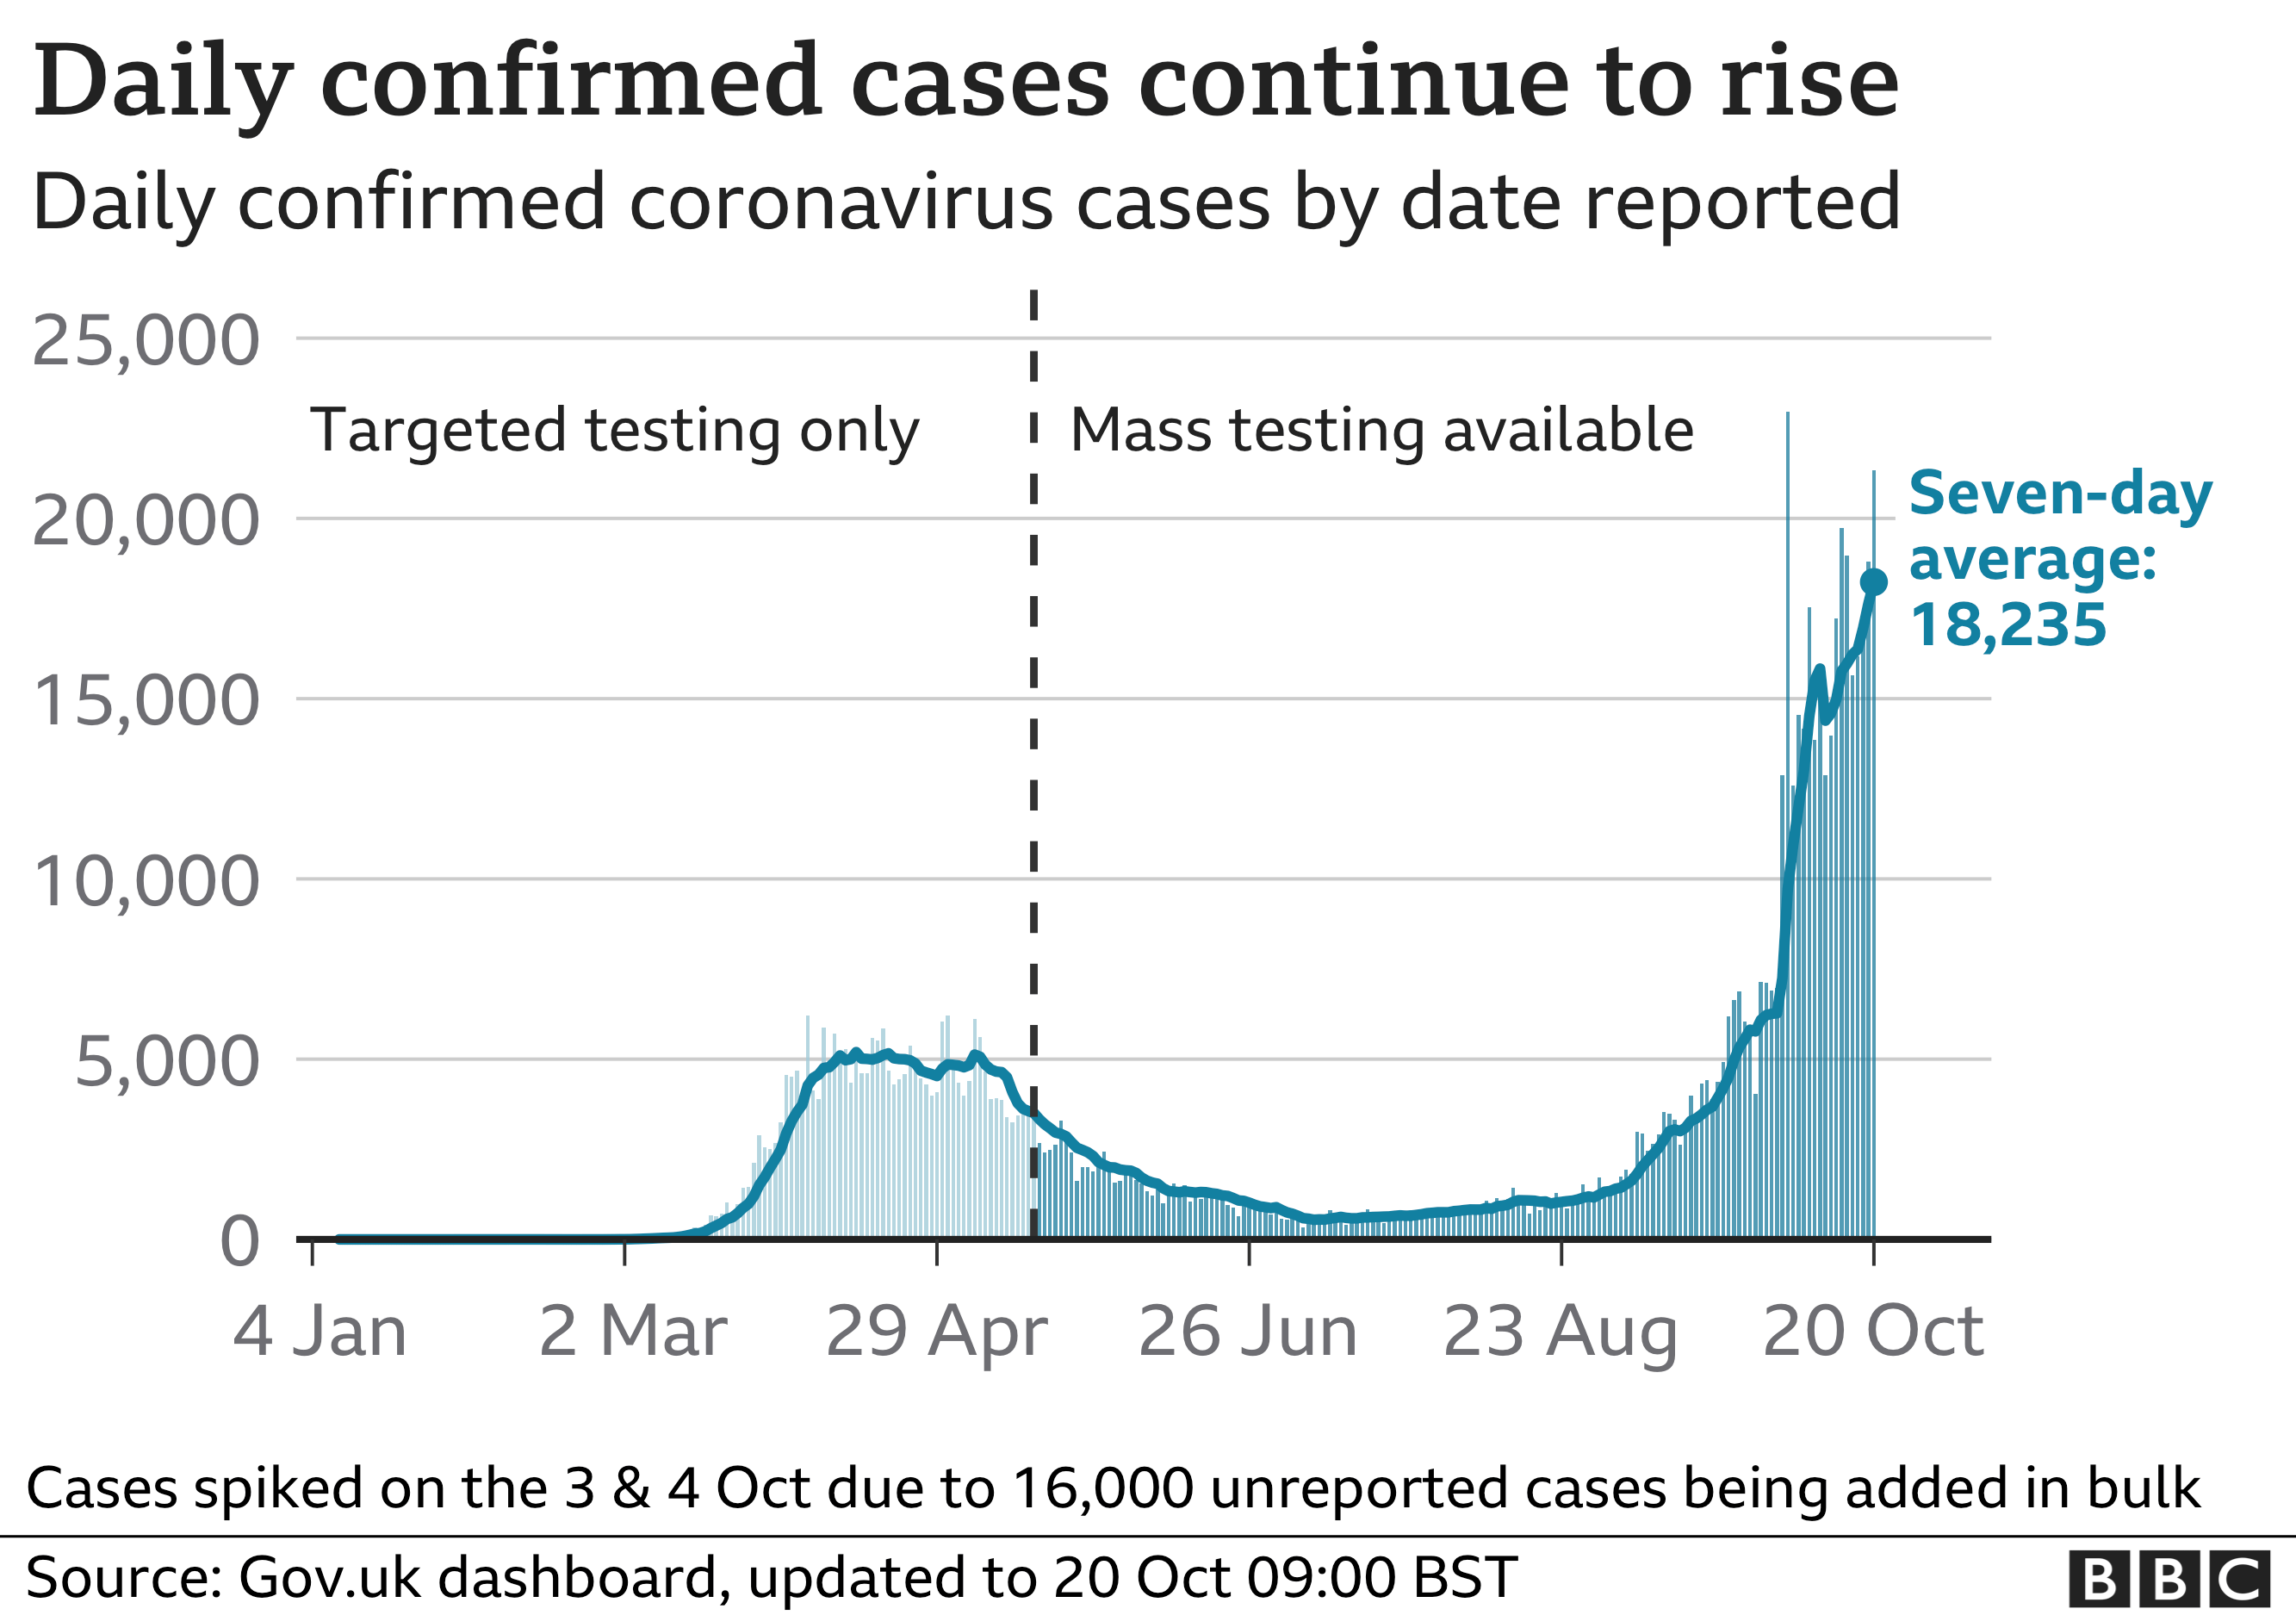 Chart showing daily confirmed cases